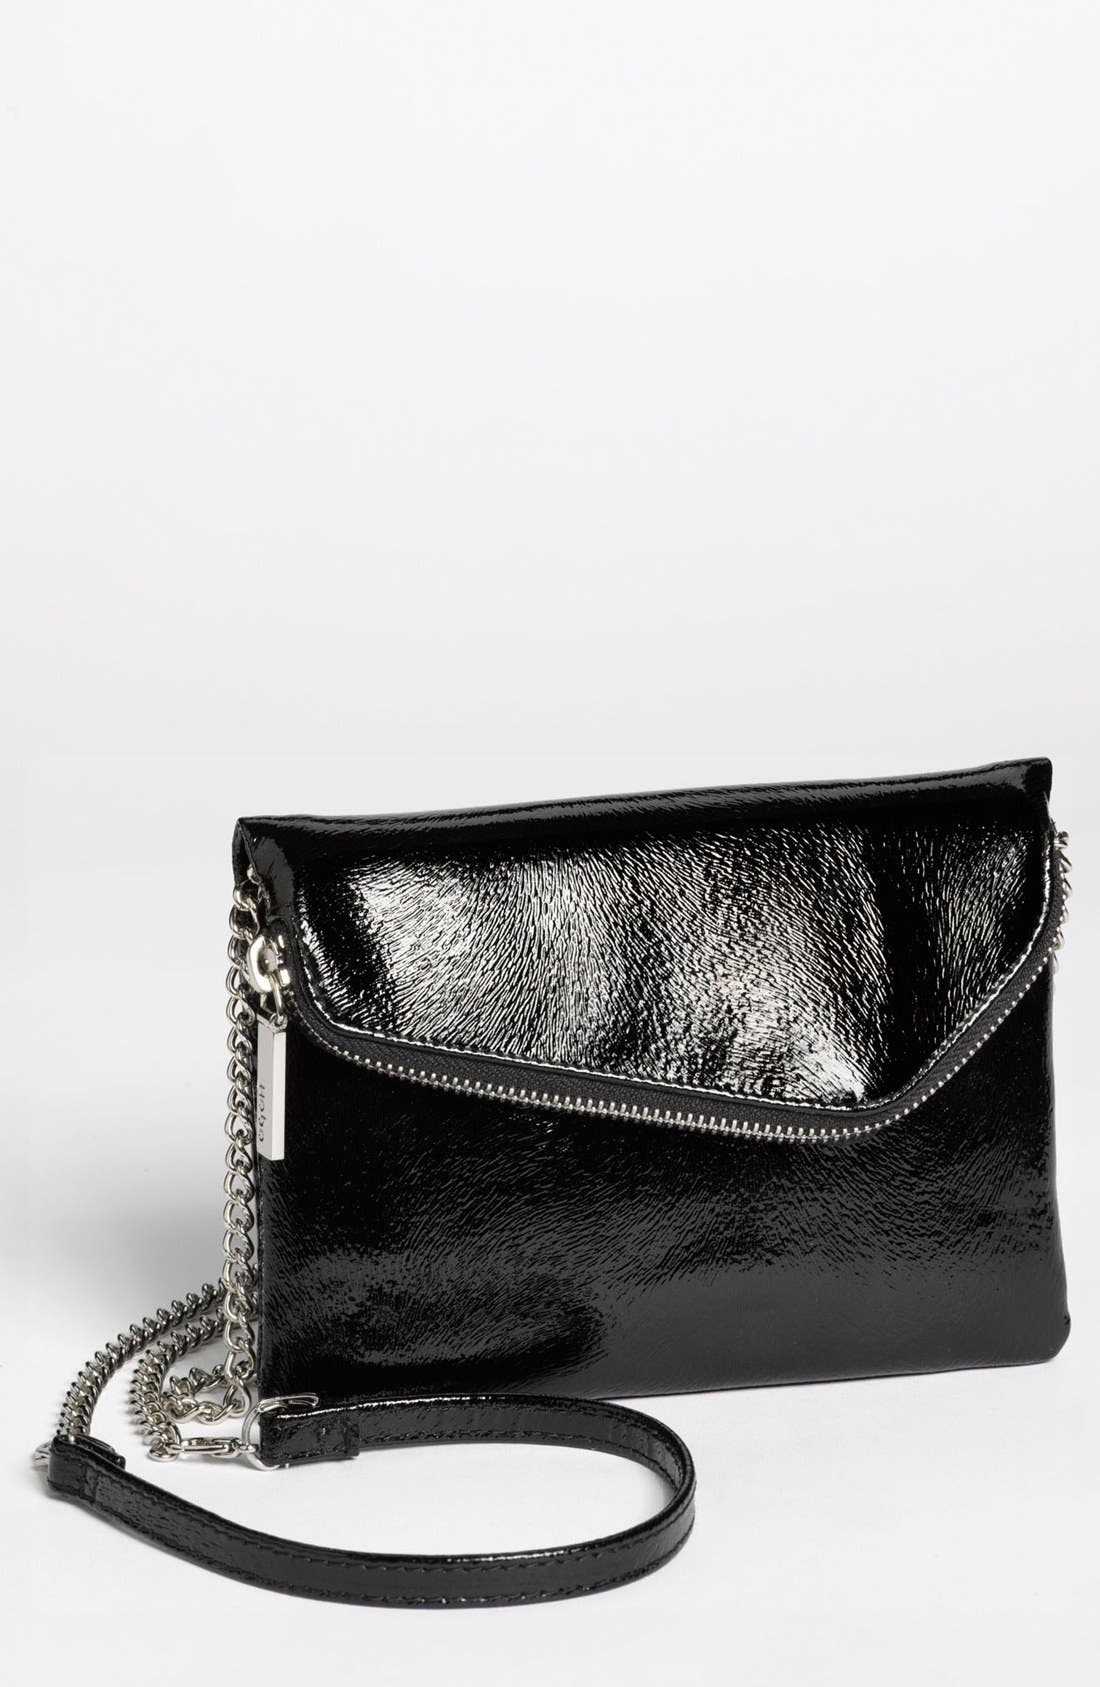 Main Image - Hobo 'Daria' Convertible Crossbody Bag, Small